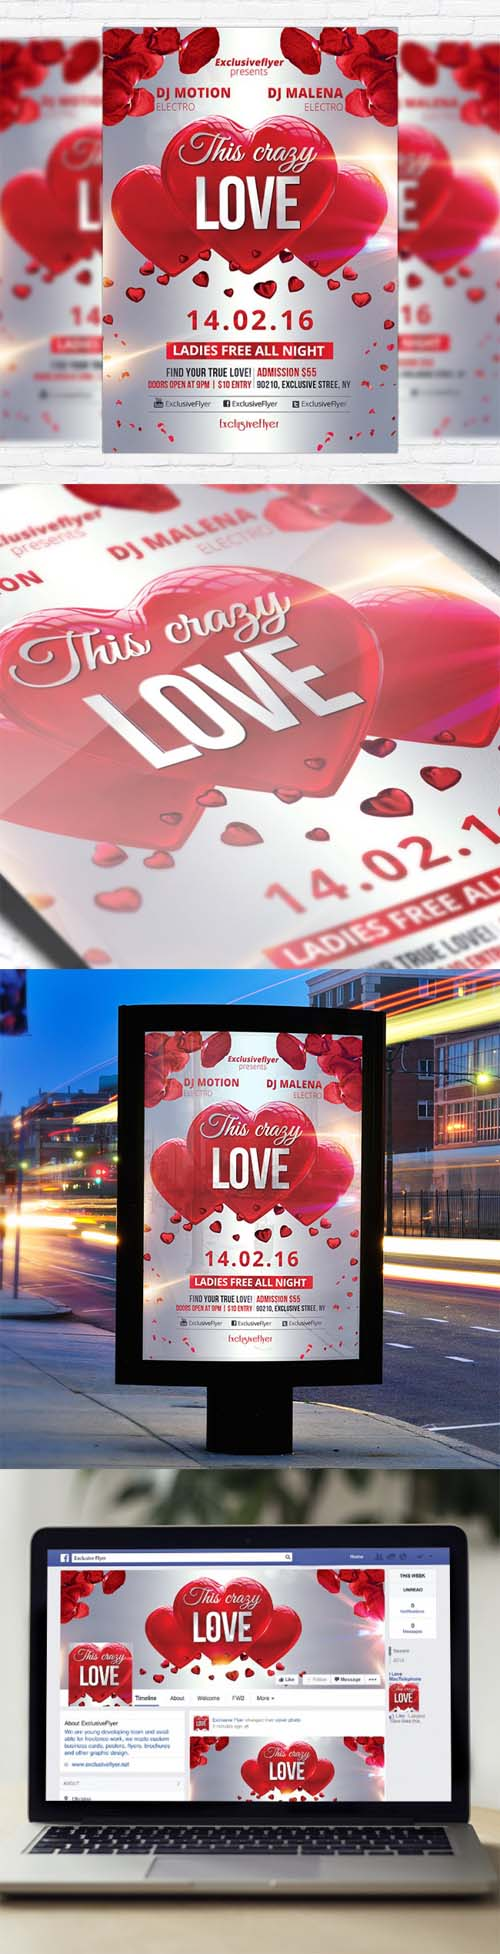 Flyer Template - This Crazy Love + Facebook Cover